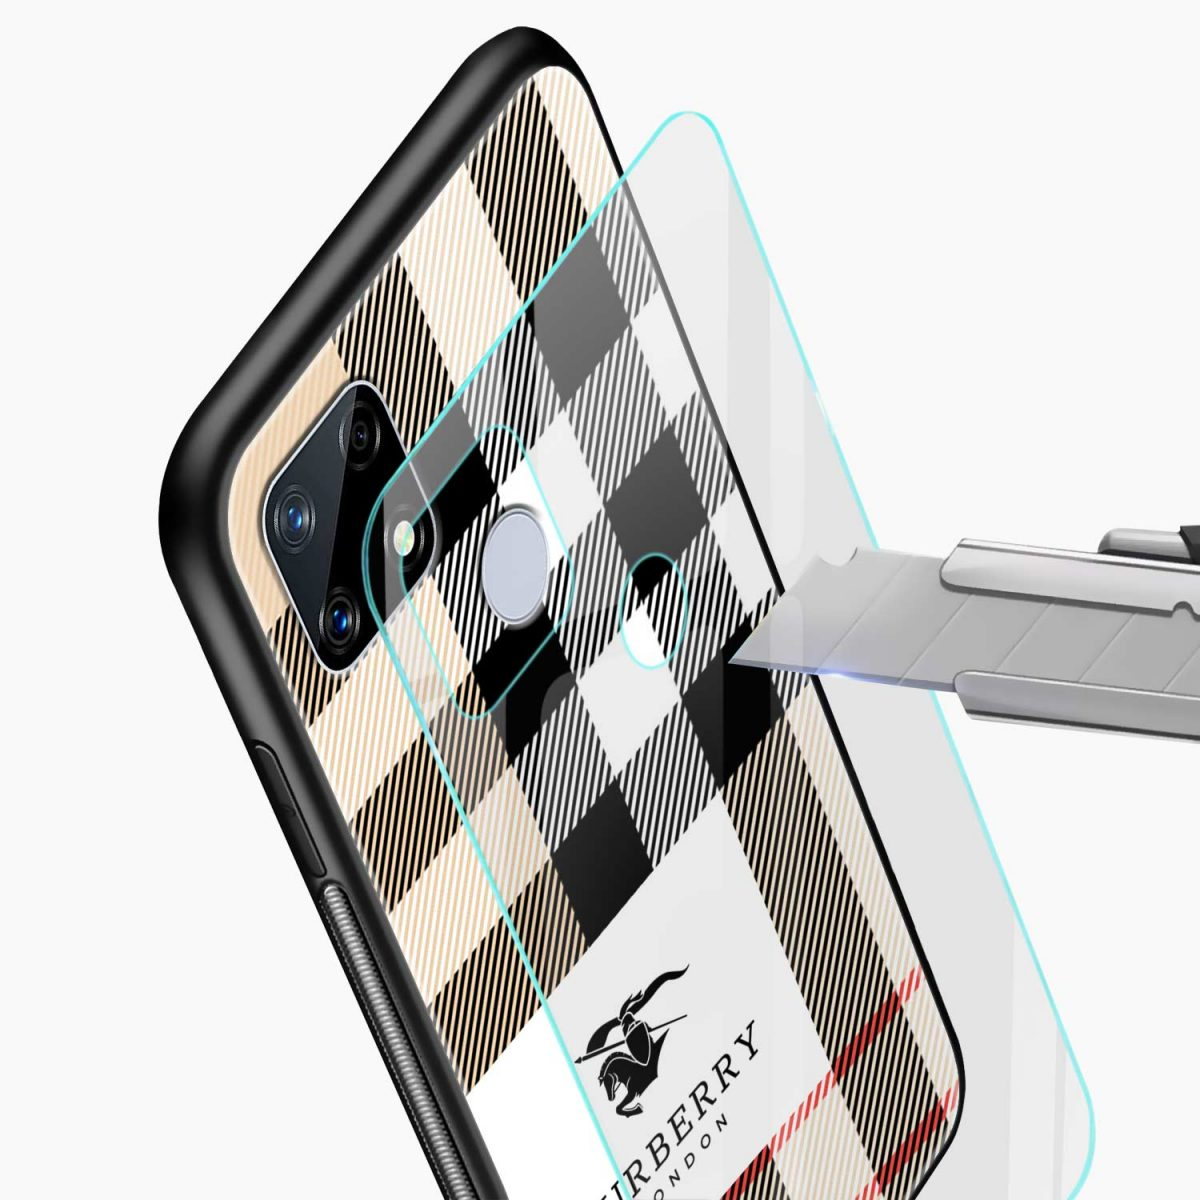 burberry cross lines pattern glass view realme narzo 20 back cover